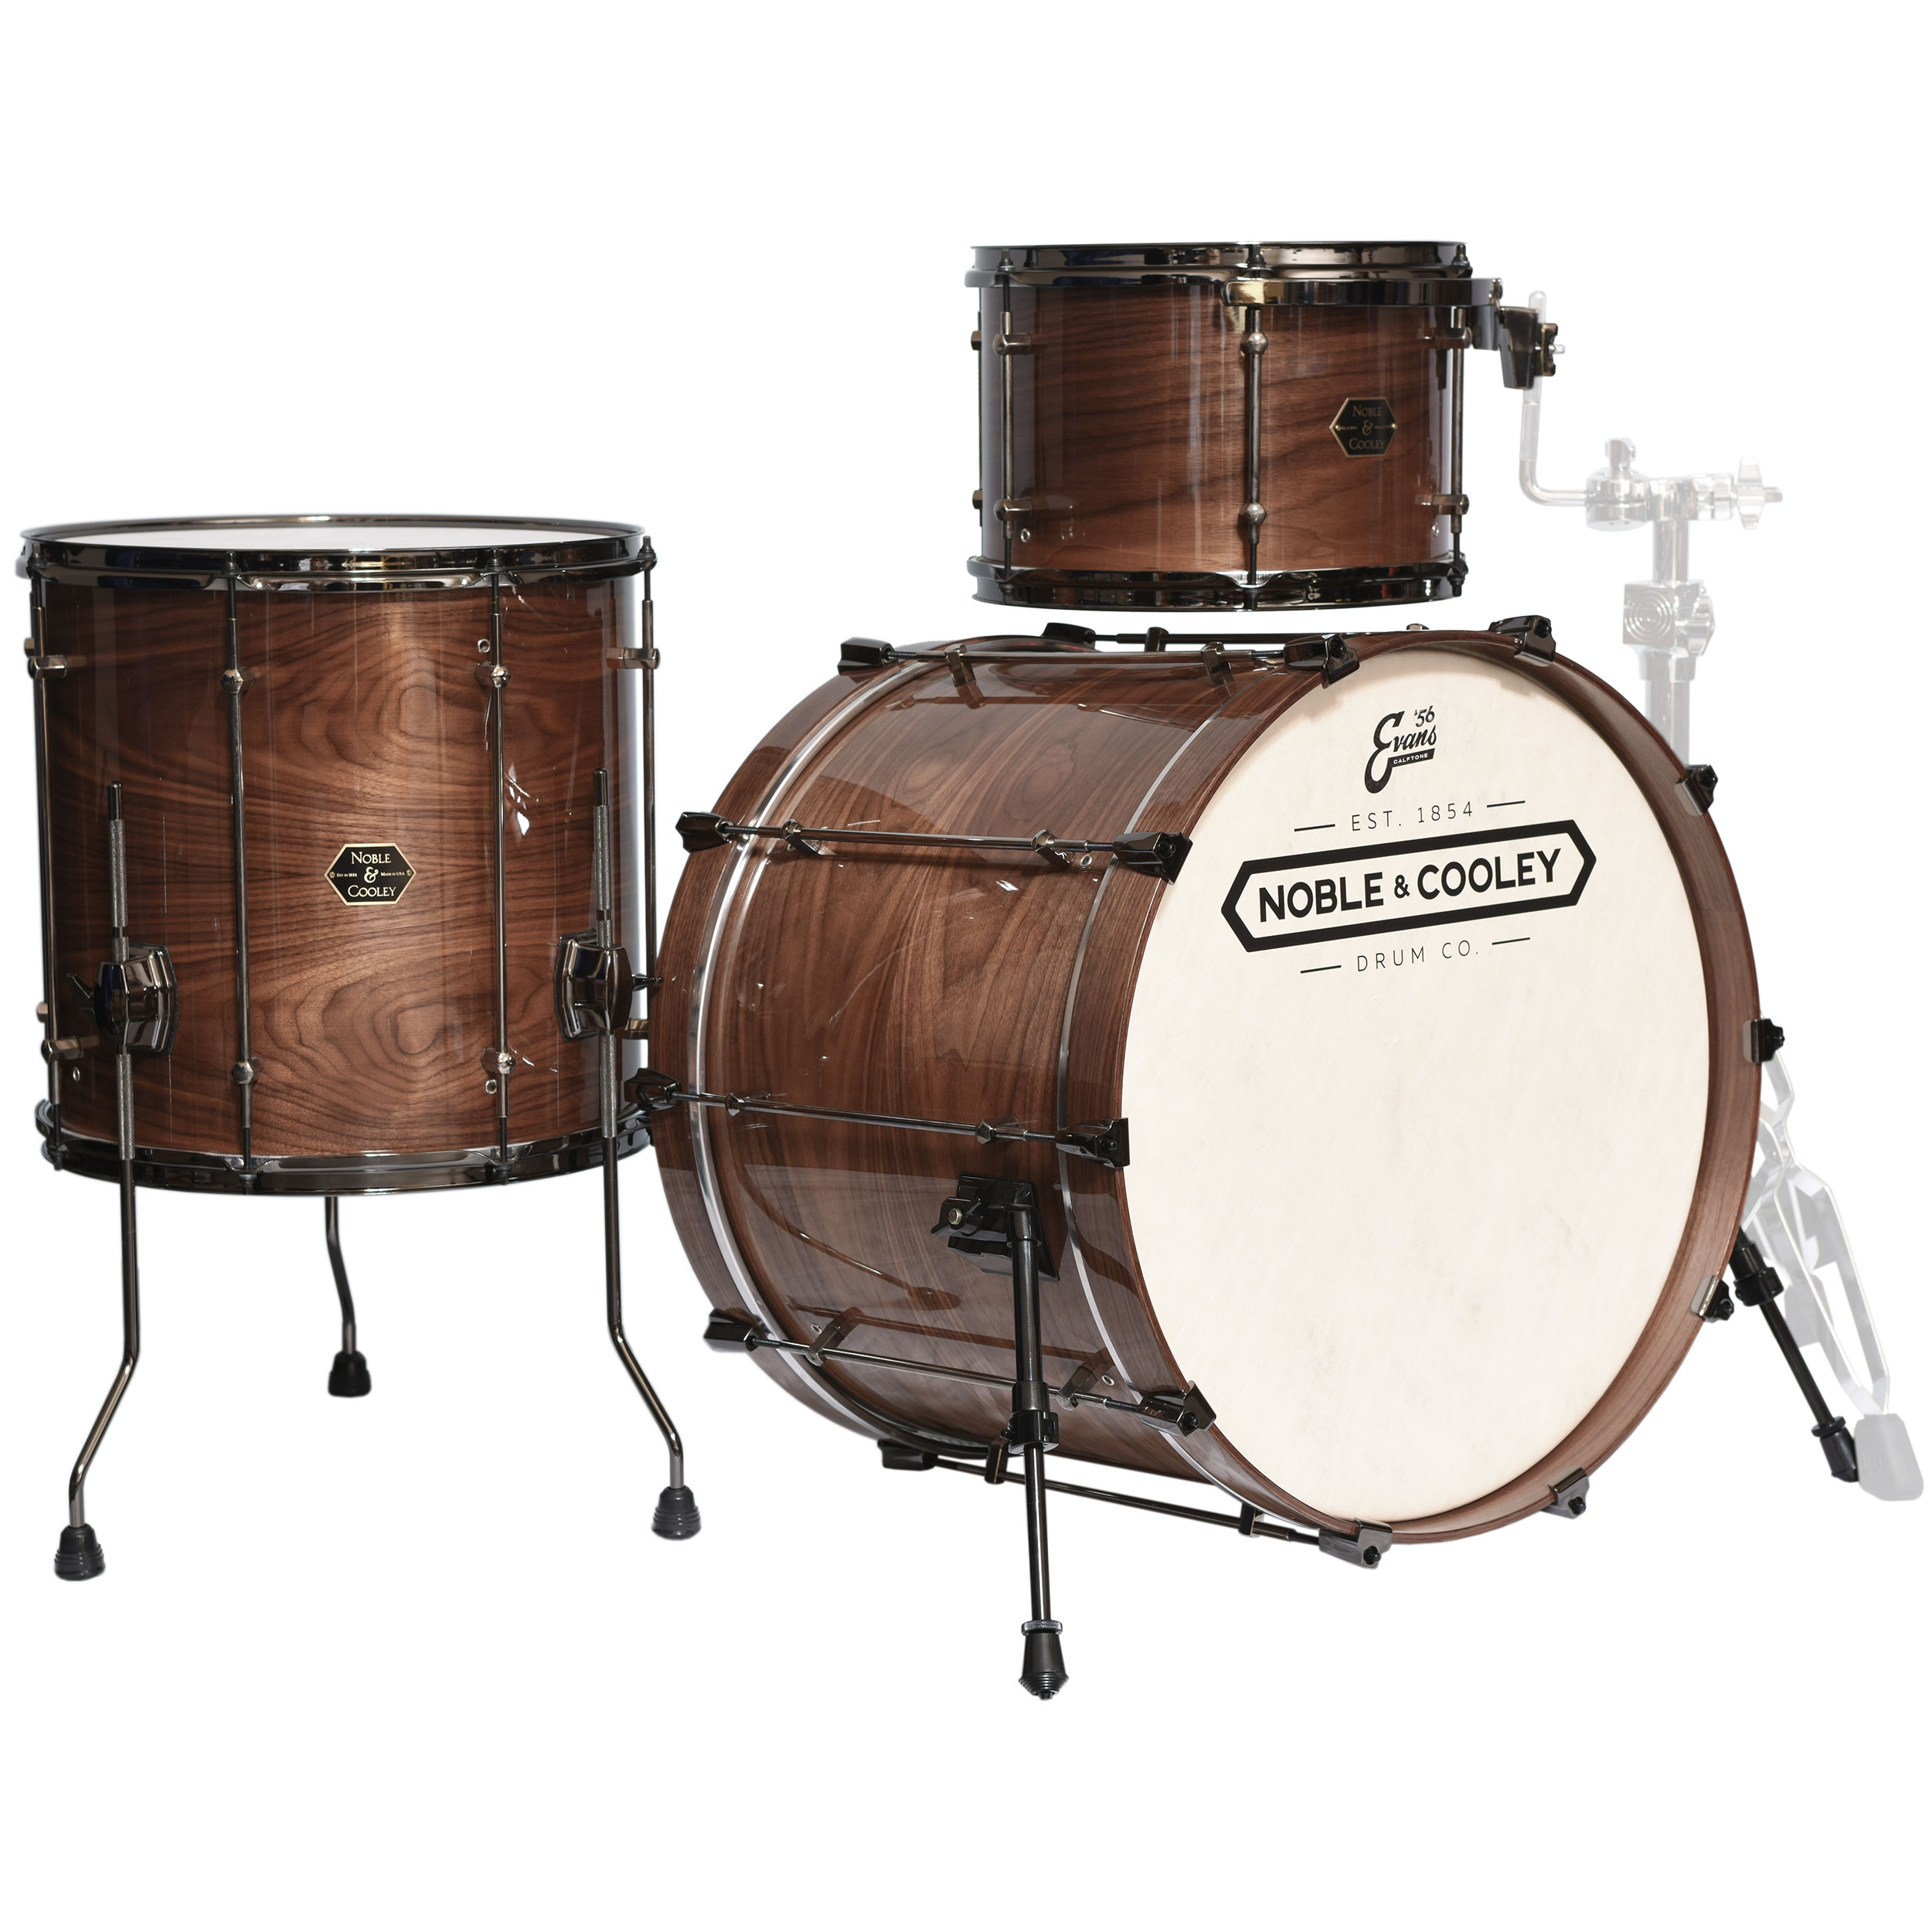 "Noble & Cooley Horizontal Ply Natural Walnut 3-Piece Drum Set (22"" Bass Drum, 13/16"" Toms)"